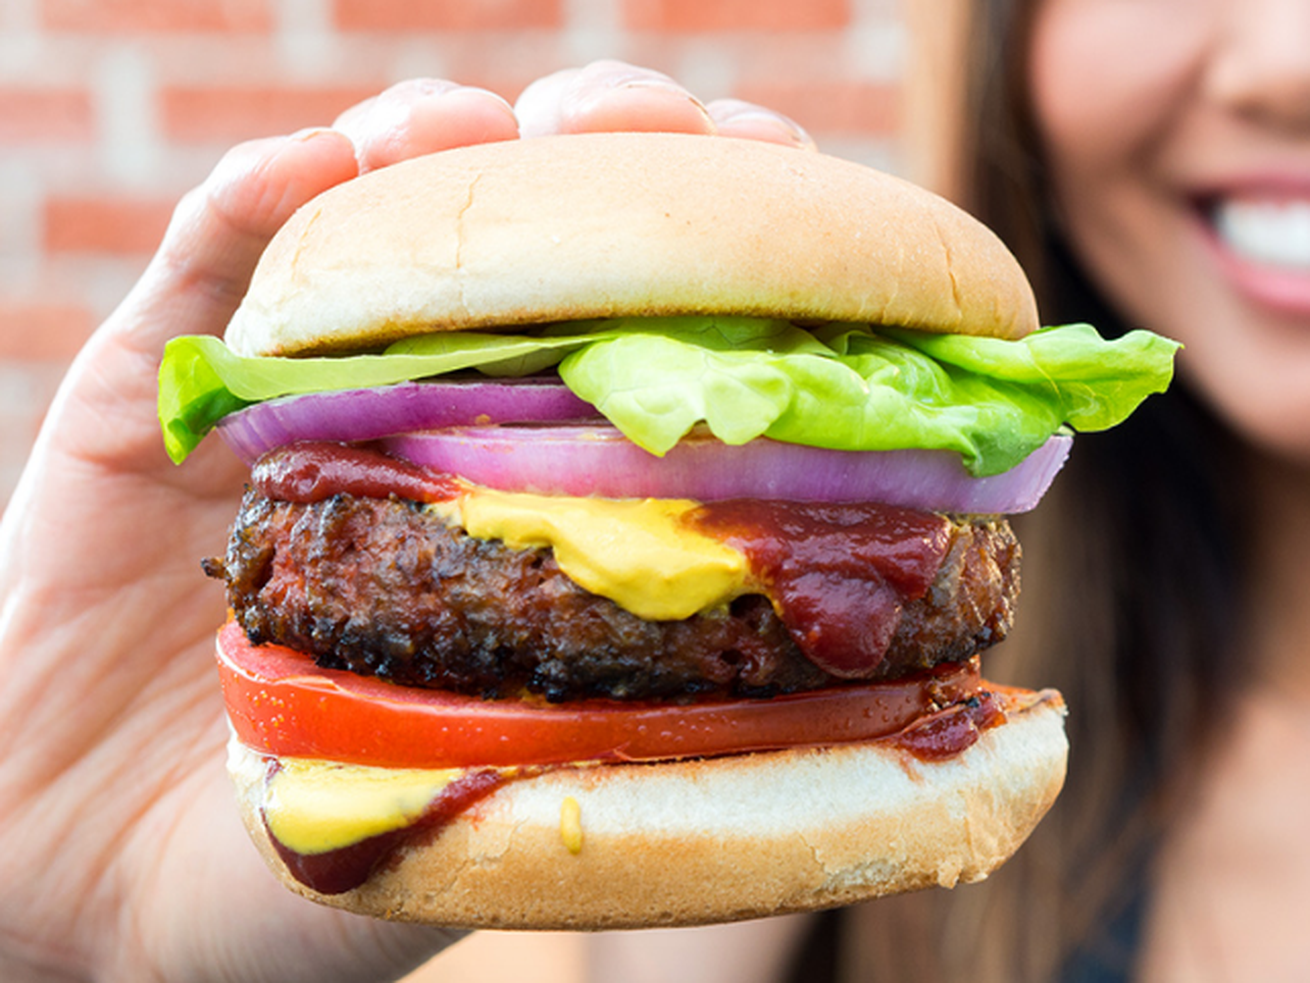 The Veggie Burger That 'Bleeds' Will Soon Be Available in Atlanta